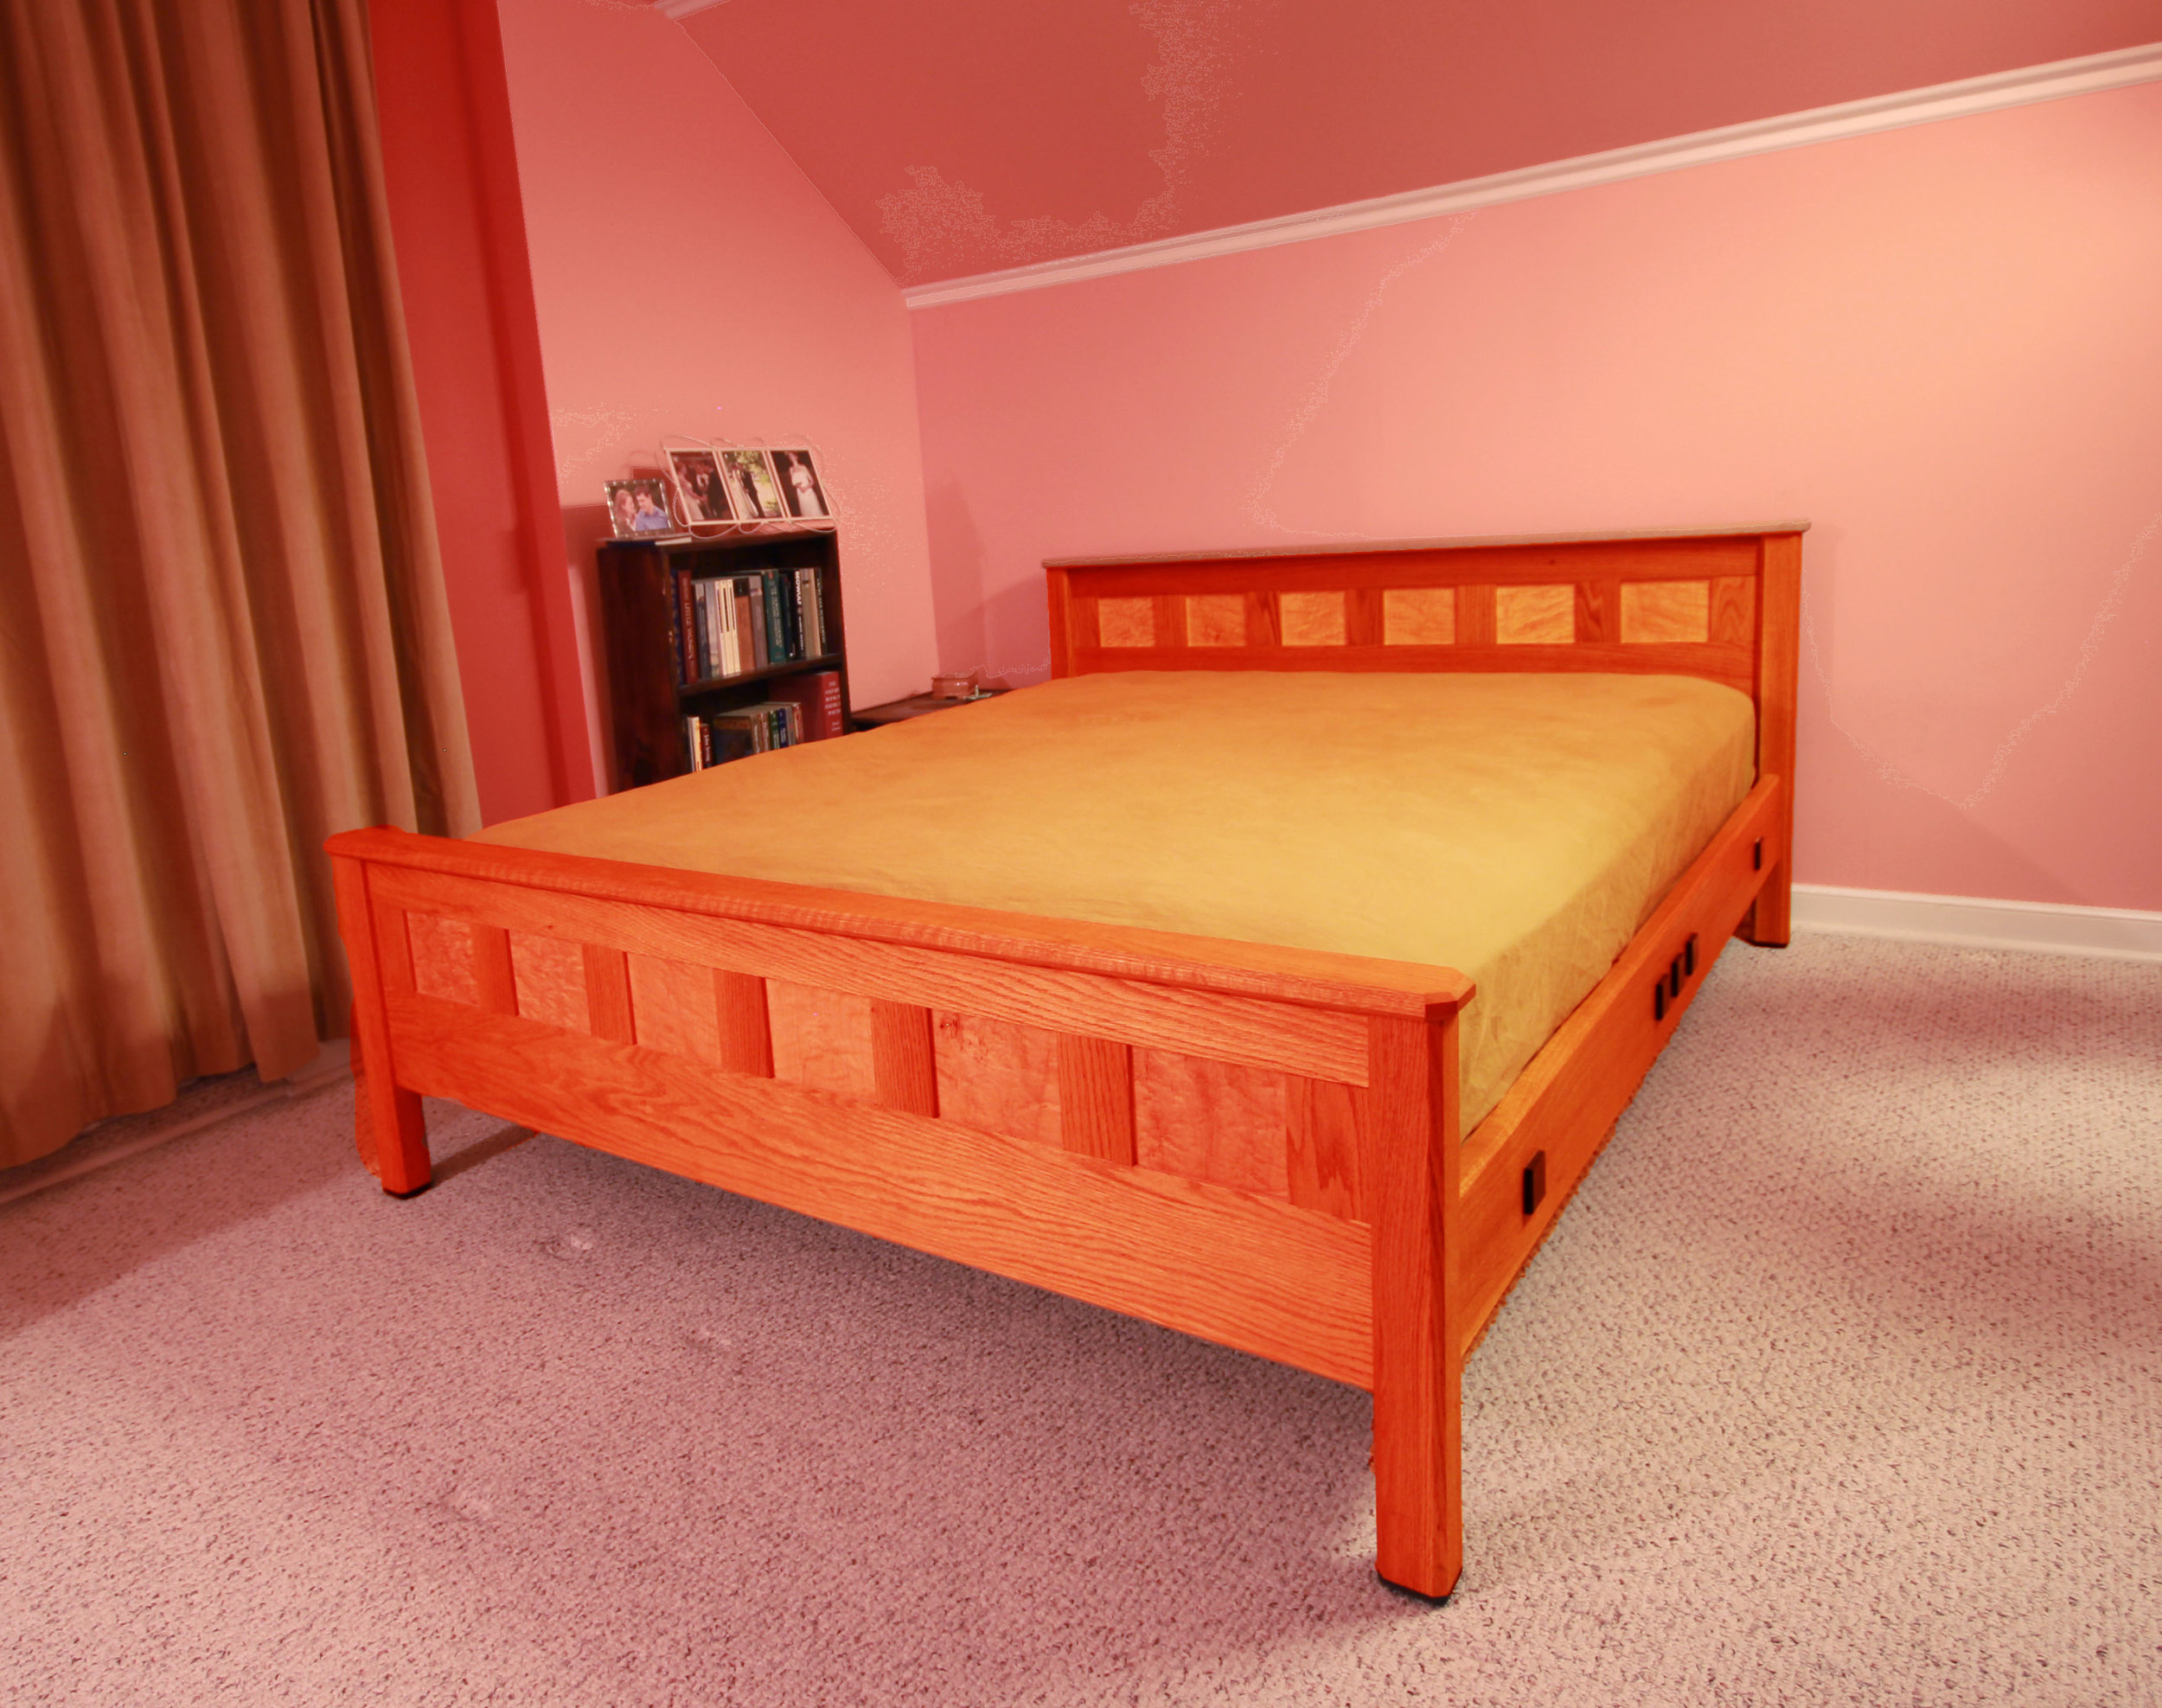 King size bed frame made from red oak, maple, and wenge.